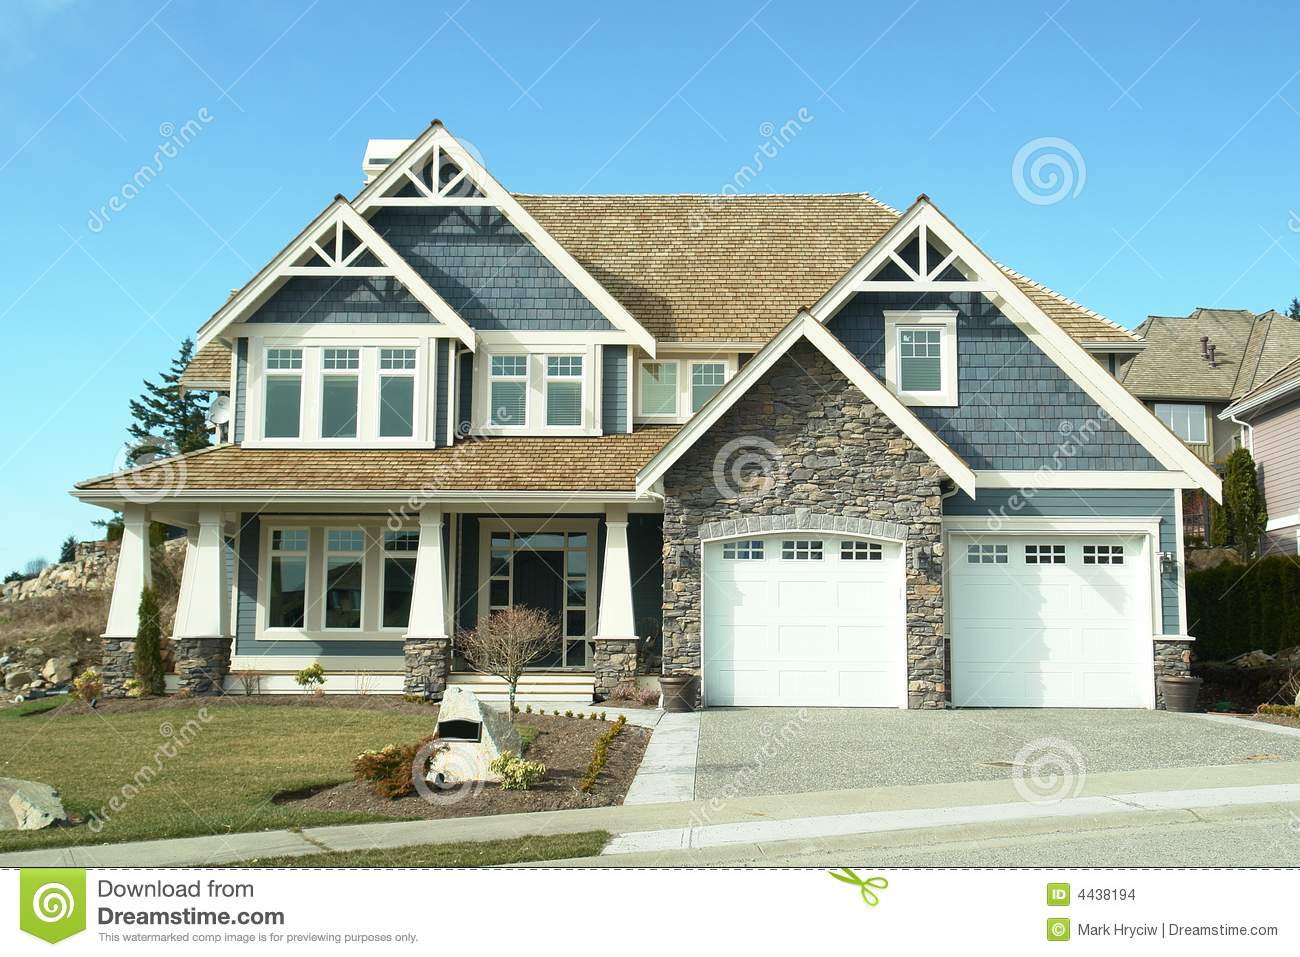 Home designer with home builder royalty free stock image for Home builder com